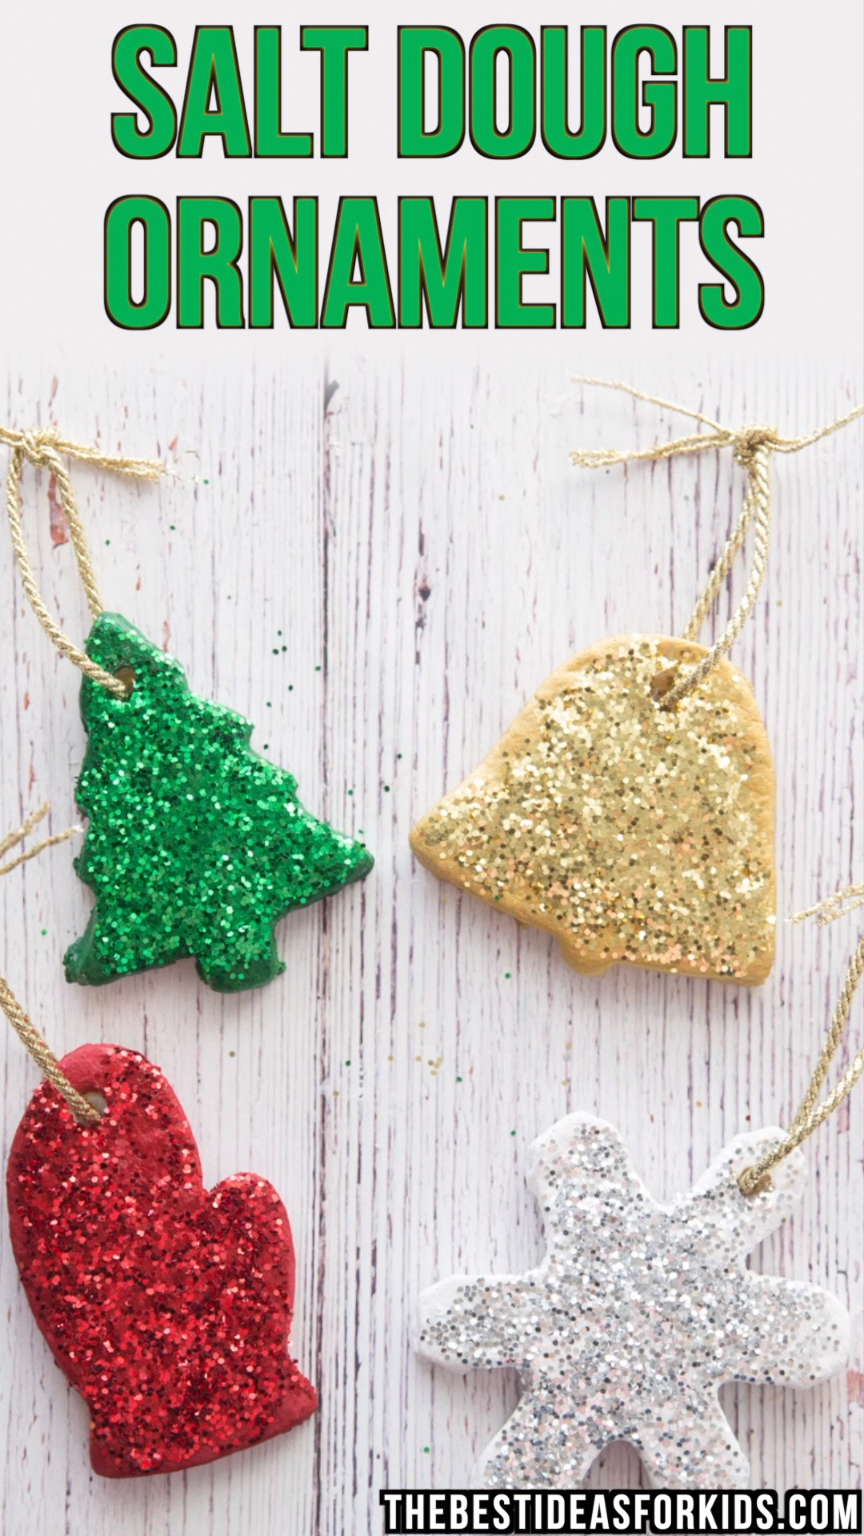 SALT DOUGH ORNAMENTS - these diy salt dough ornaments are so fun to make! These make perfect #christmas gifts or even just to make to put up on your Christmas tree. #bestideasforkids #saltdoughornaments